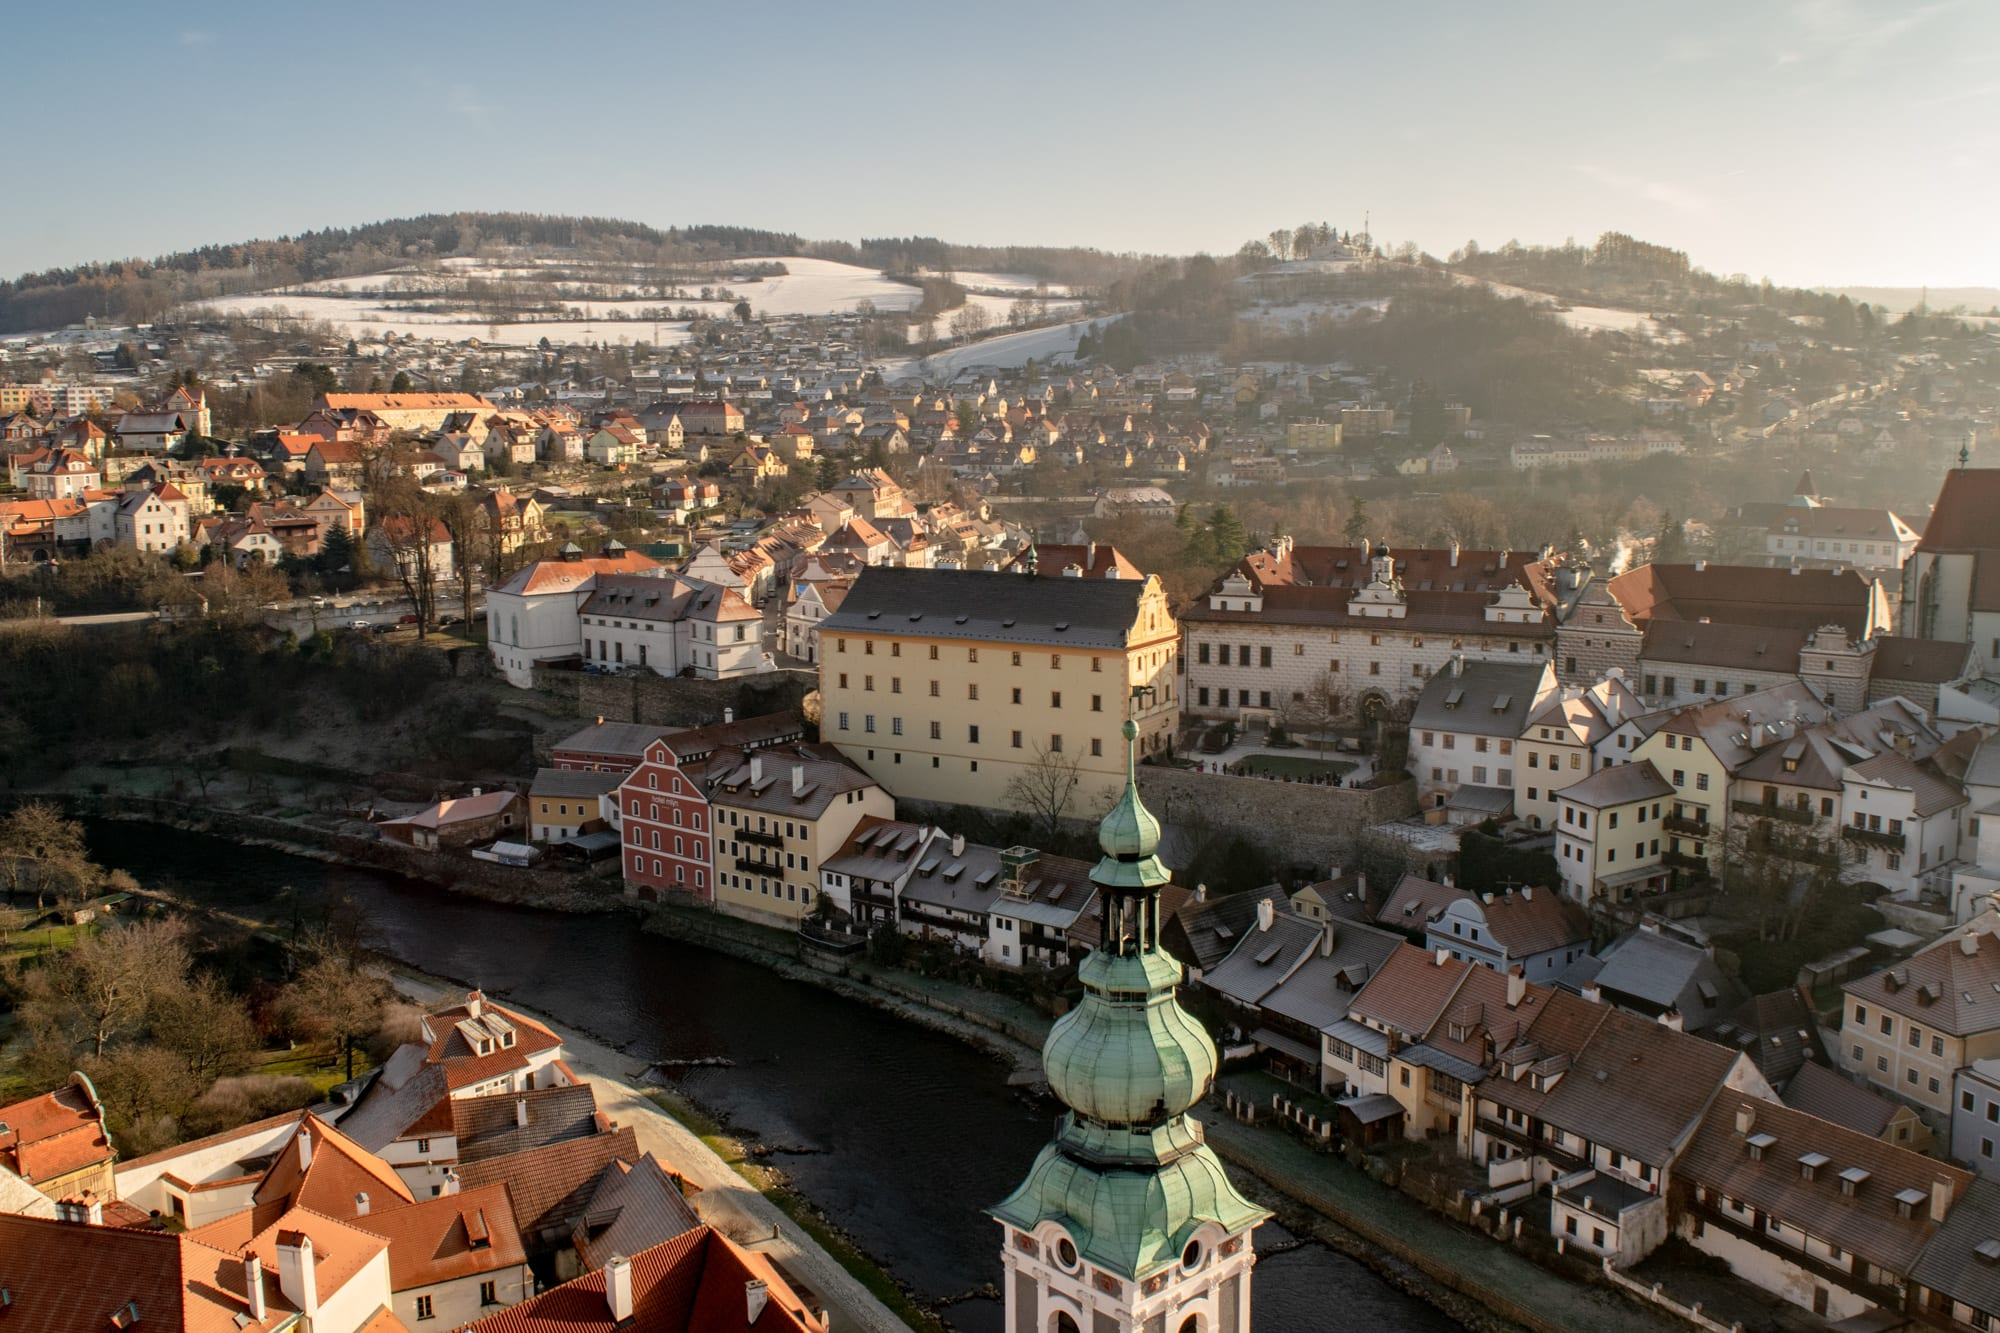 view of cesky krumlov from above after traveling Vienna to Cesky Krumlov by Train